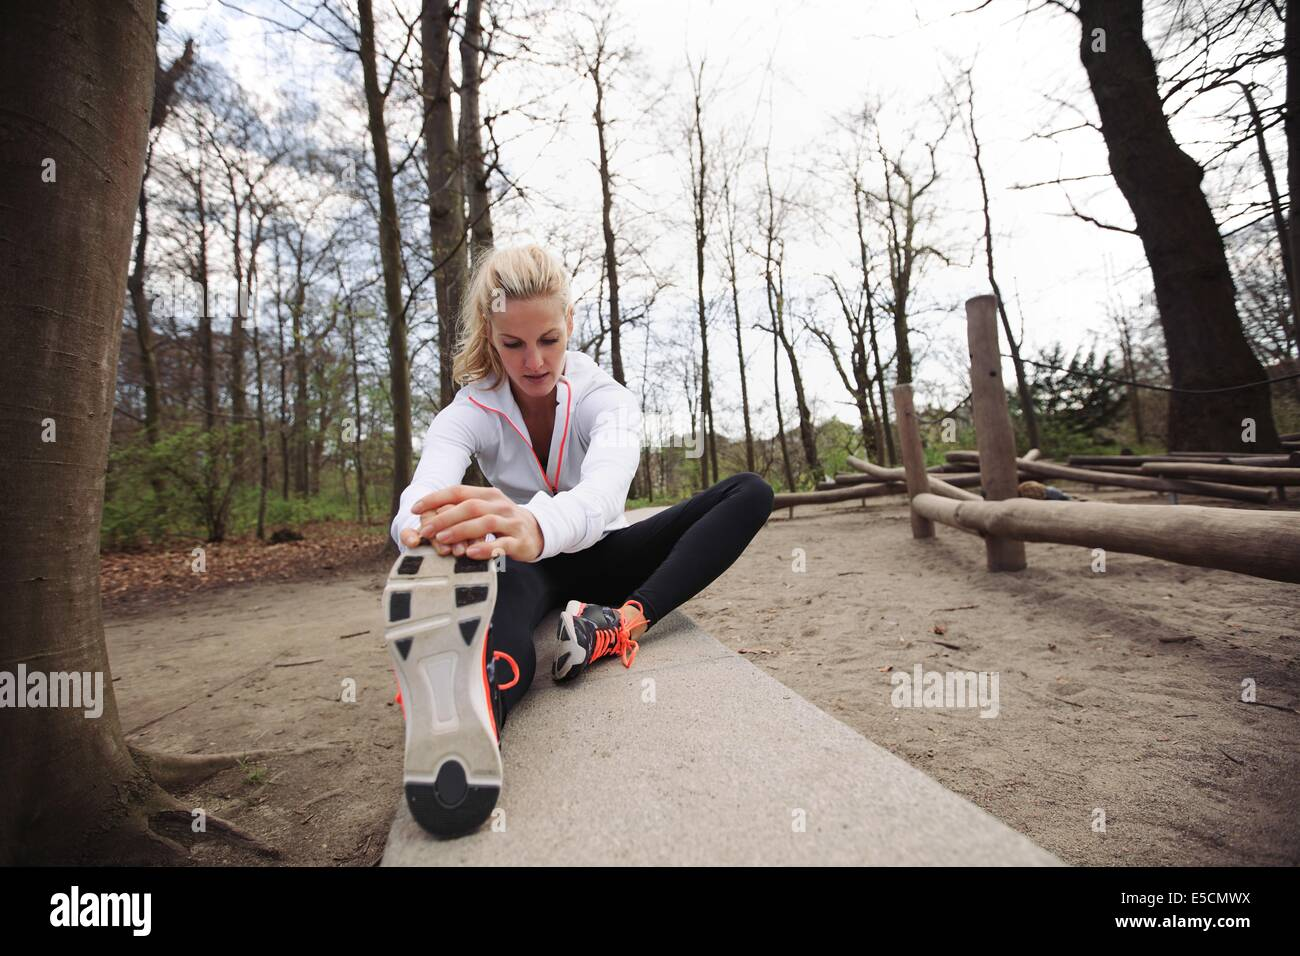 Fit woman stretching her legs before a run. Caucasian female model exercising in park. - Stock Image